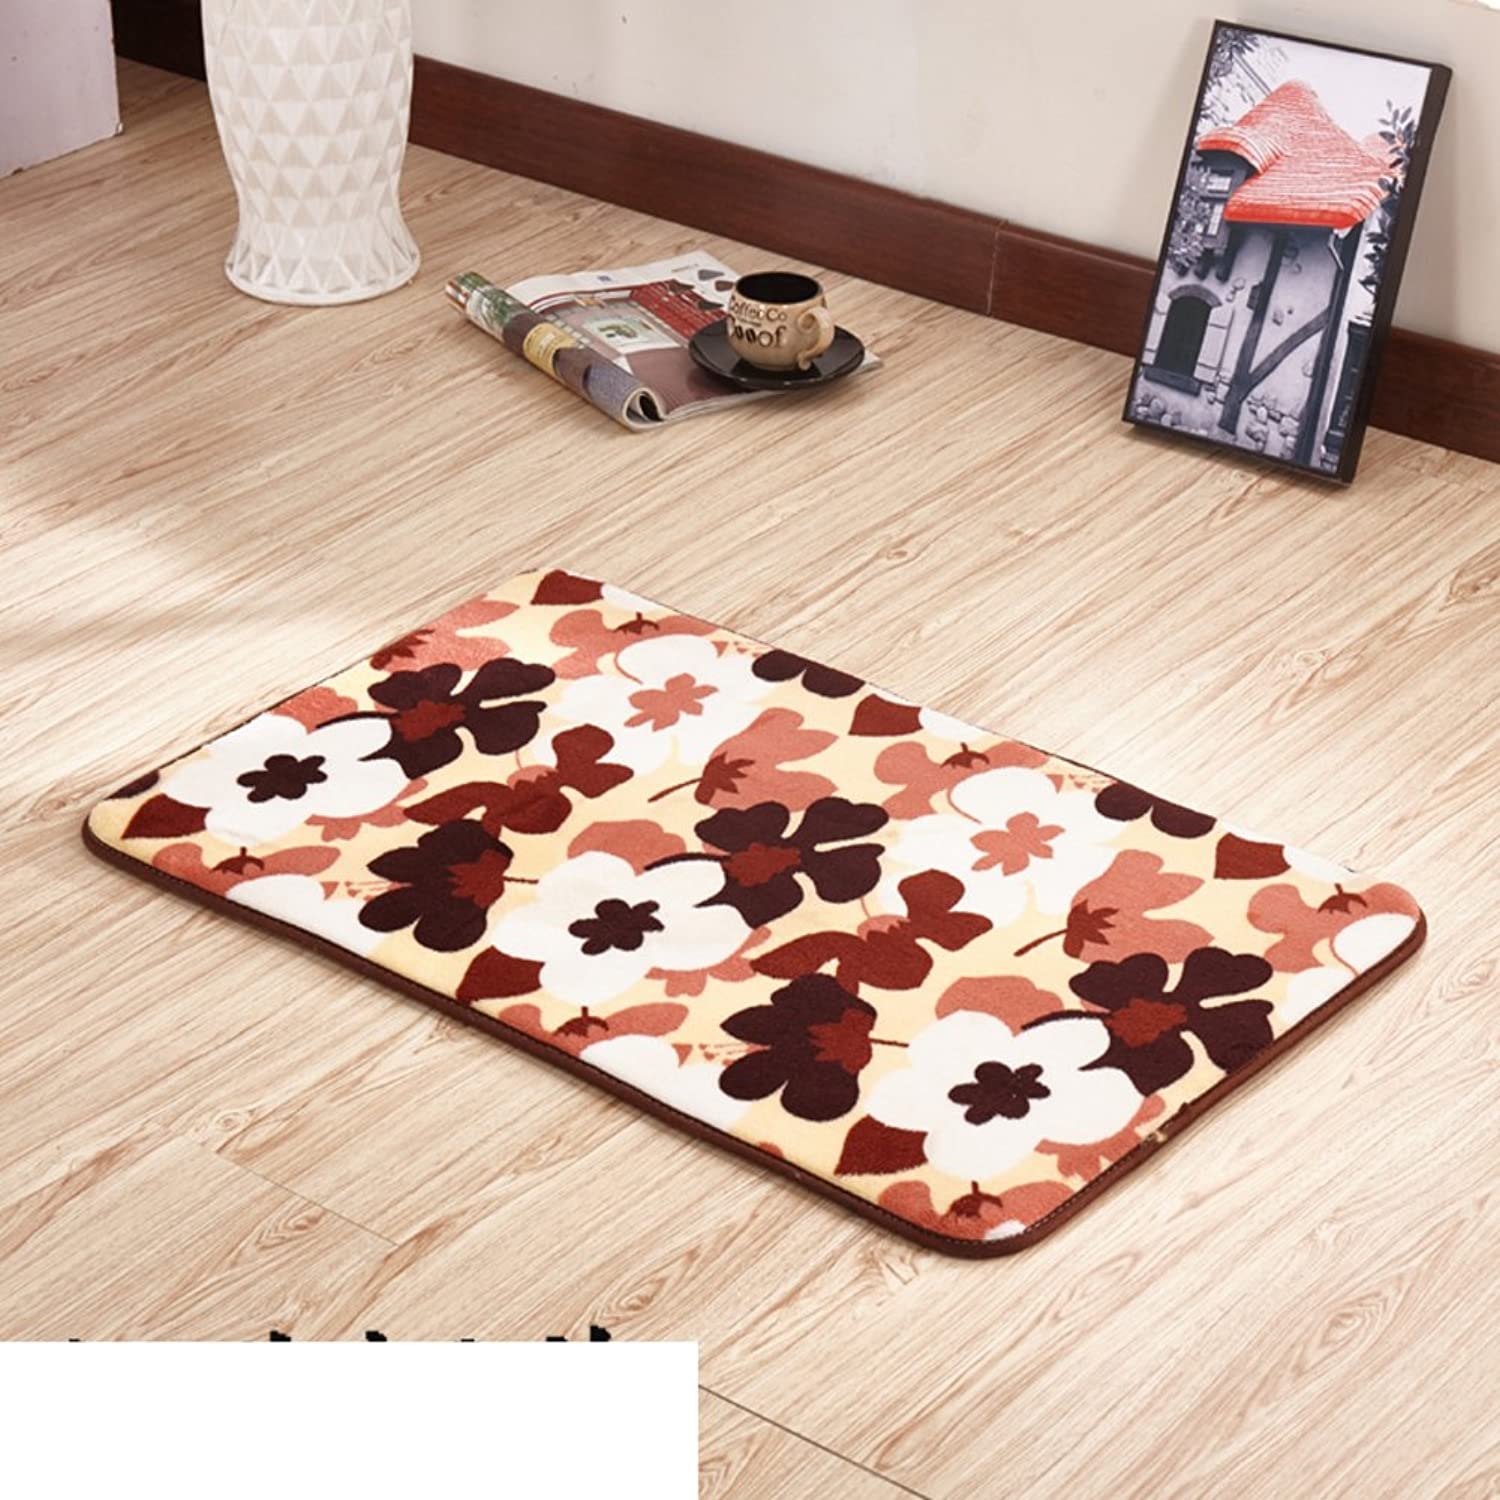 Thickened Household Door mats Bedroom Indoor mats Bathroom pratunam pad Kitchen Floor mats-G 100x200cm(39x79inch)